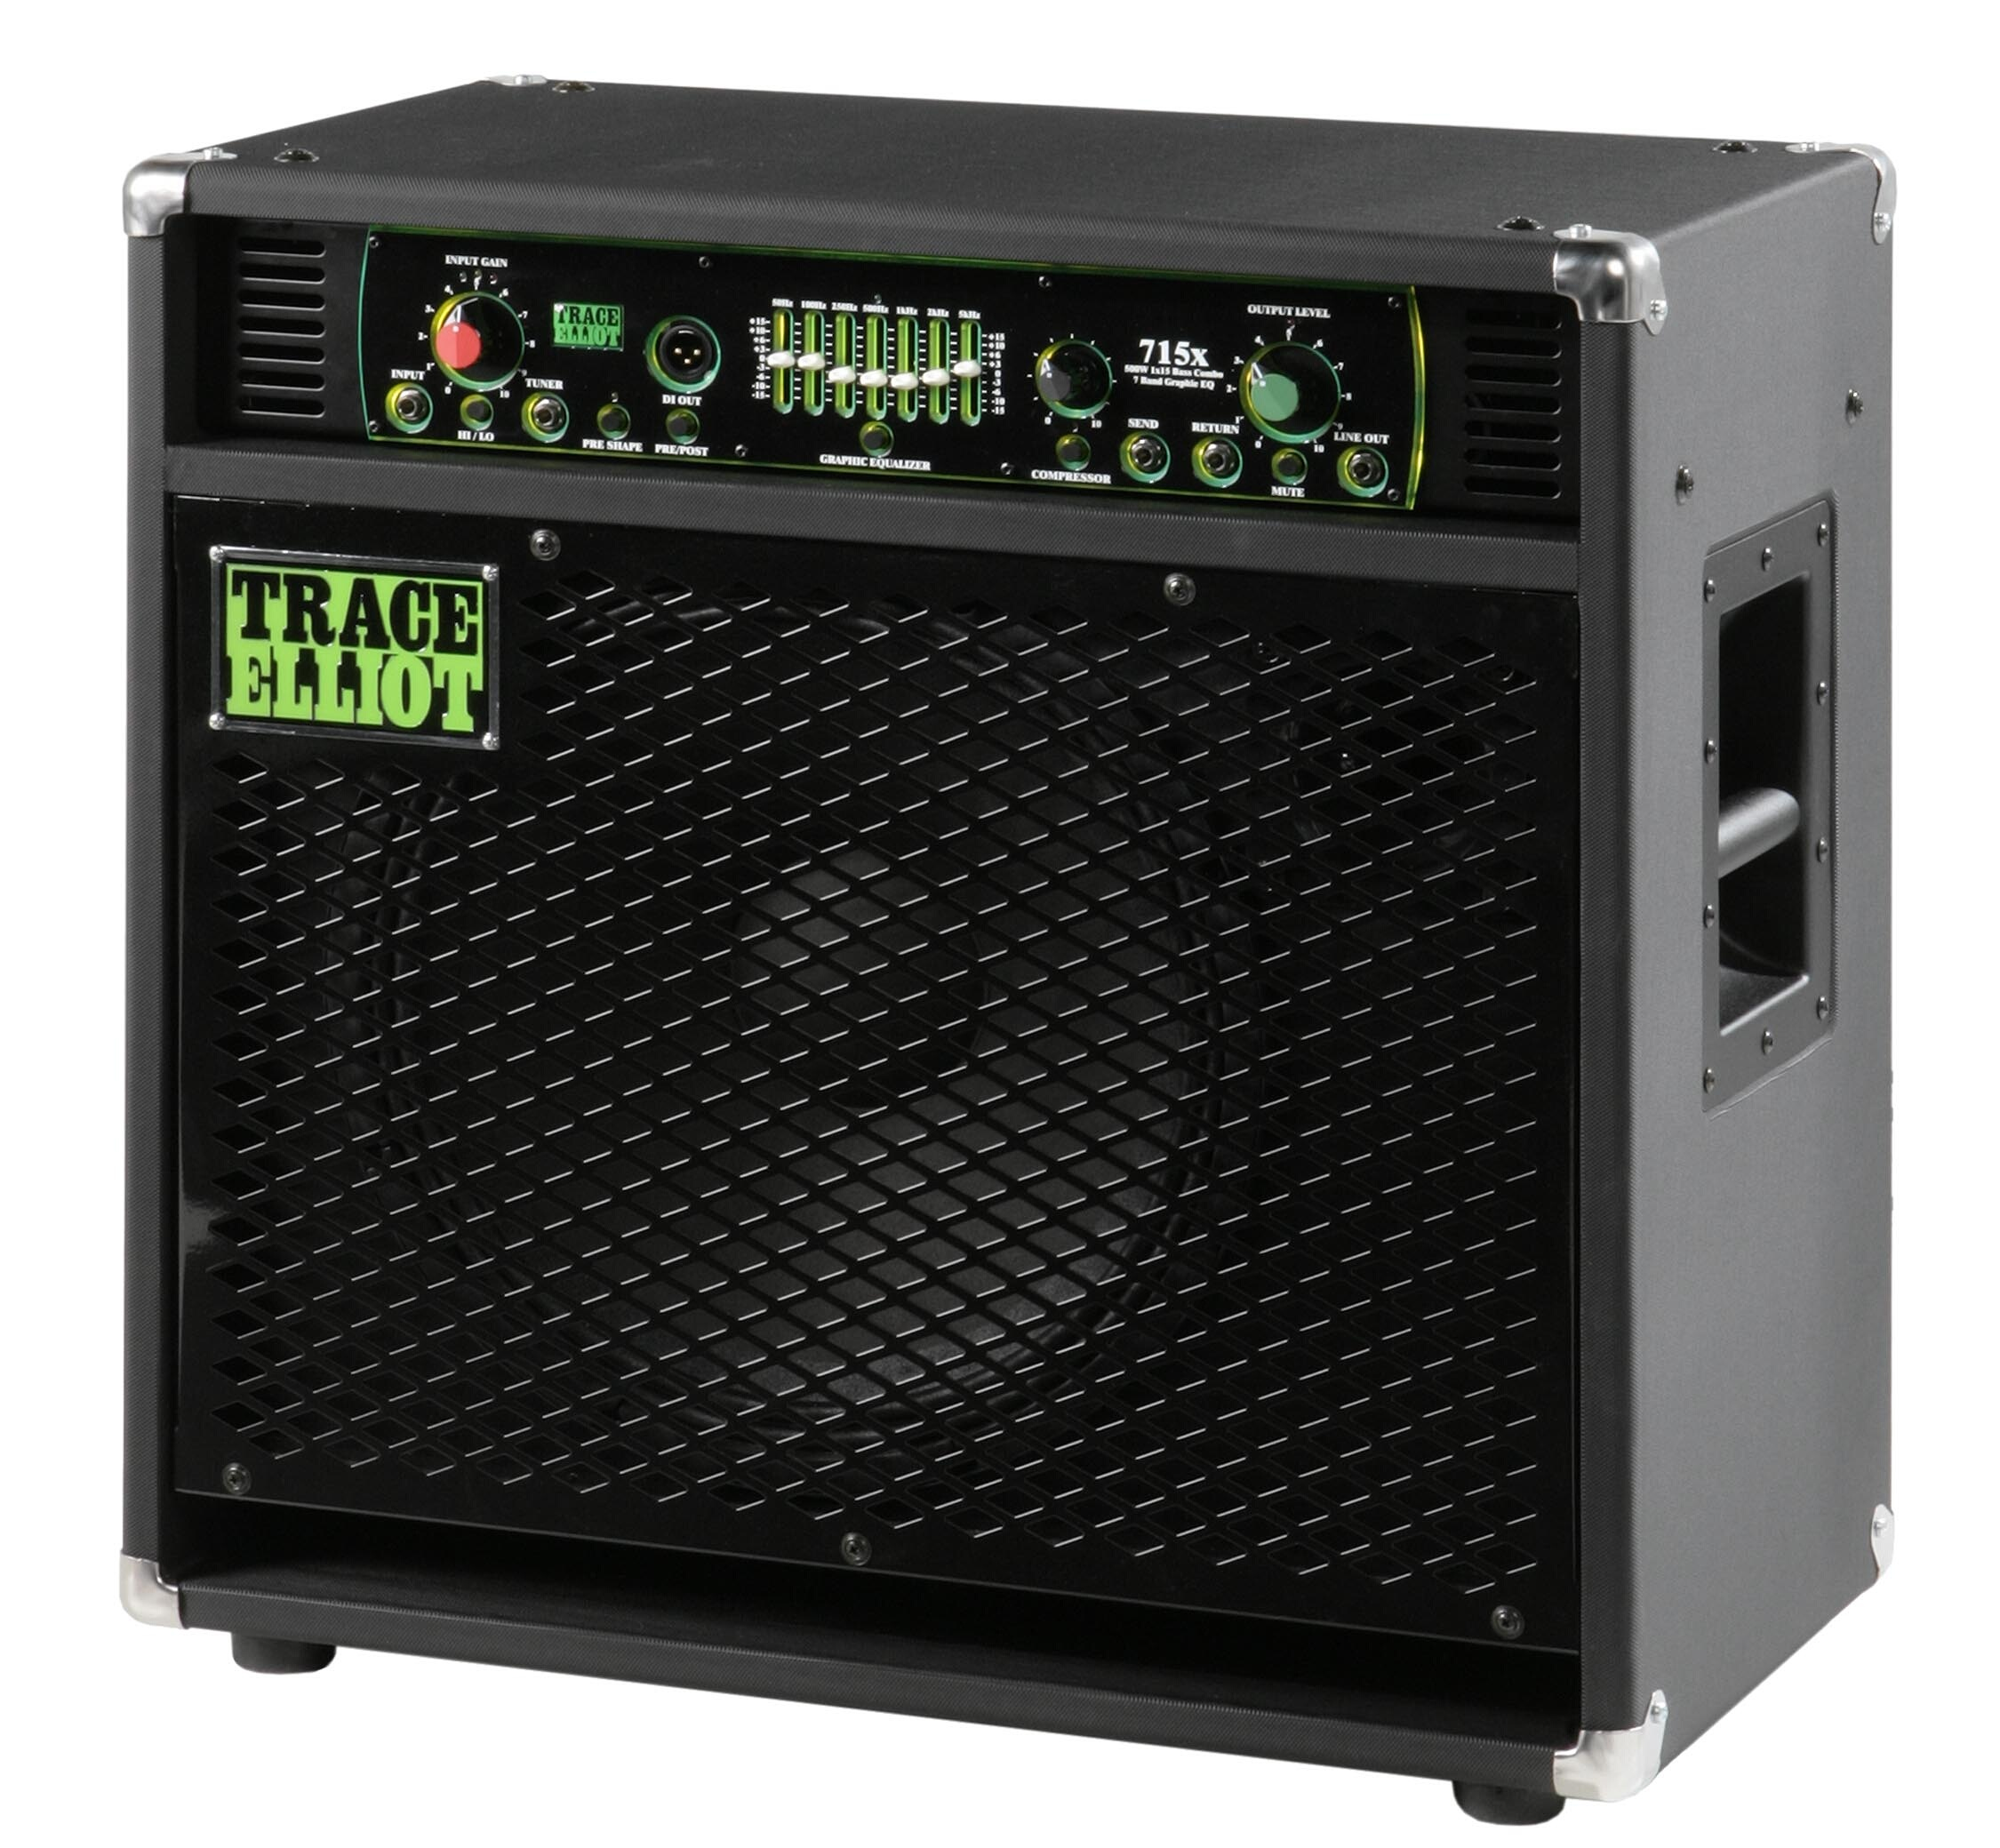 trace elliot 715x electric bass guitar 500w combo amplifier 15 speaker tube amp tel13 3600070 rs. Black Bedroom Furniture Sets. Home Design Ideas